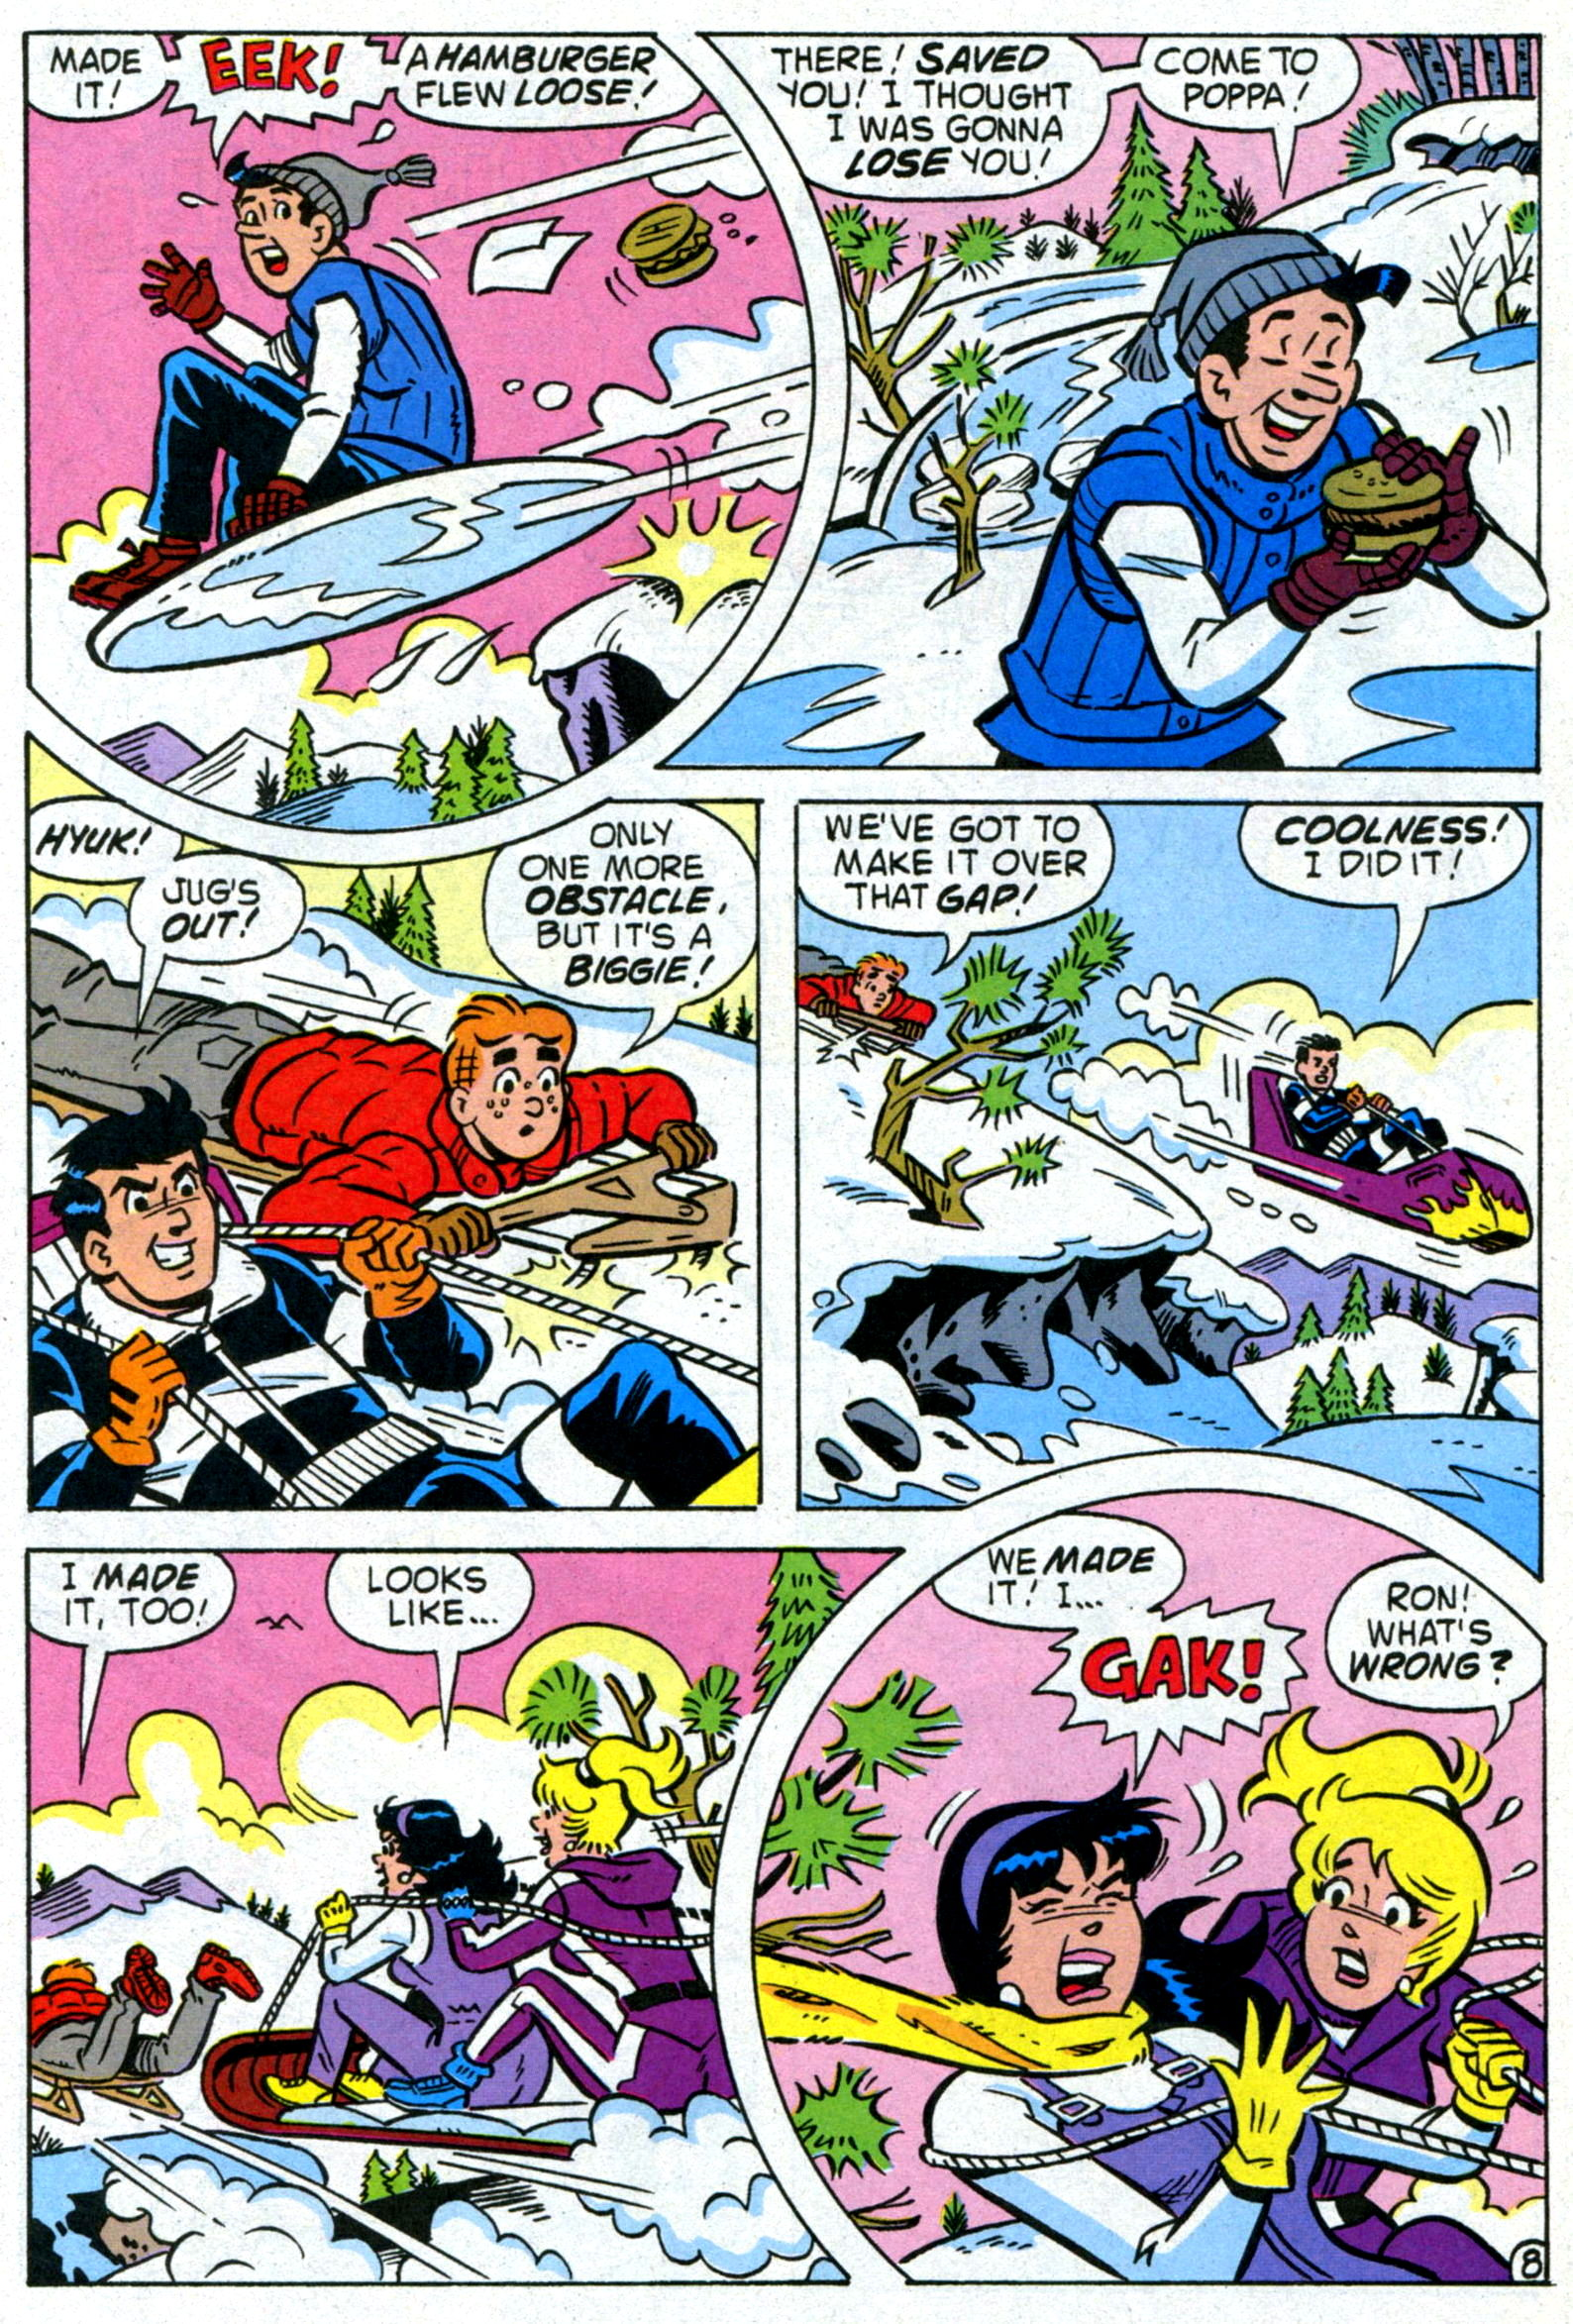 Read online World of Archie comic -  Issue #8 - 14